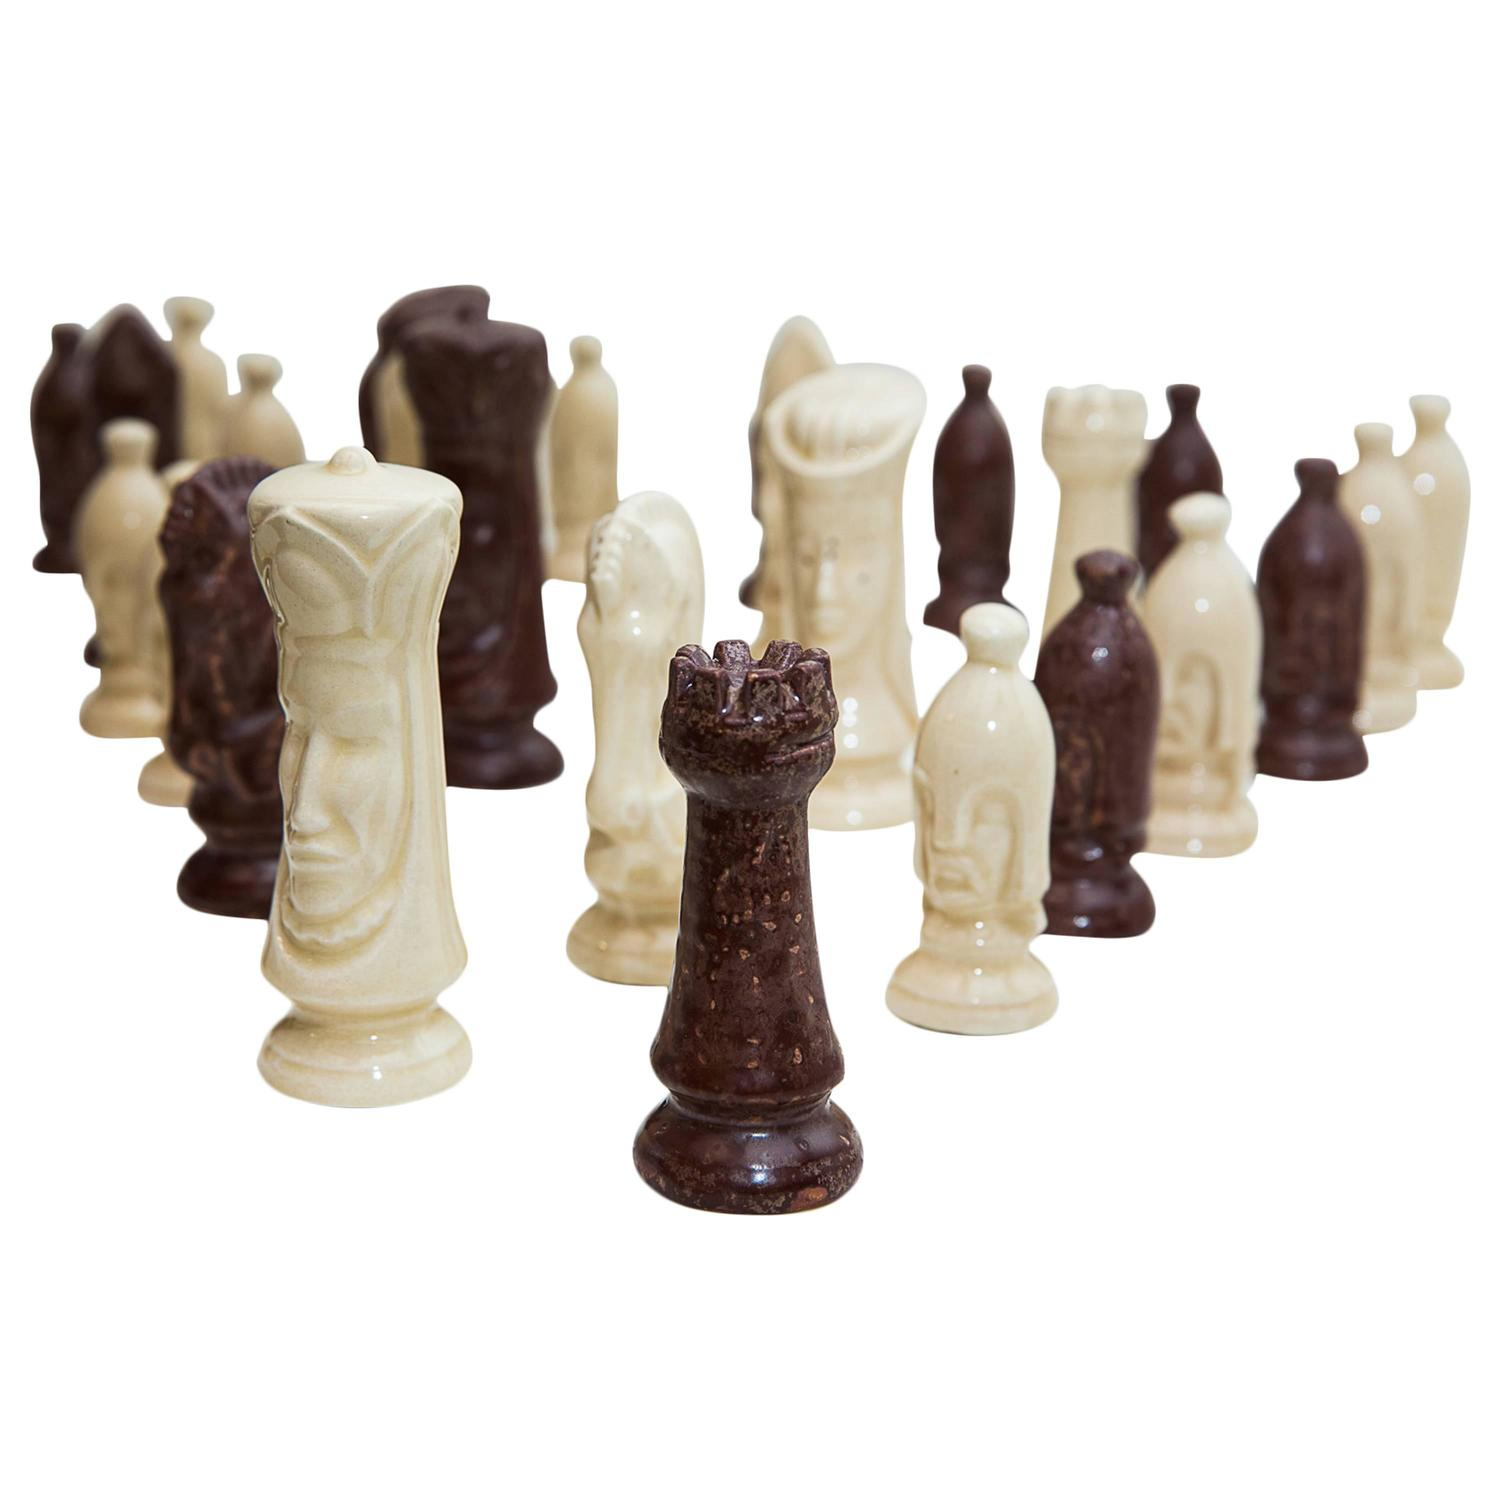 Post war neo gothic chess set for sale at 1stdibs - Ceramic chess sets for sale ...